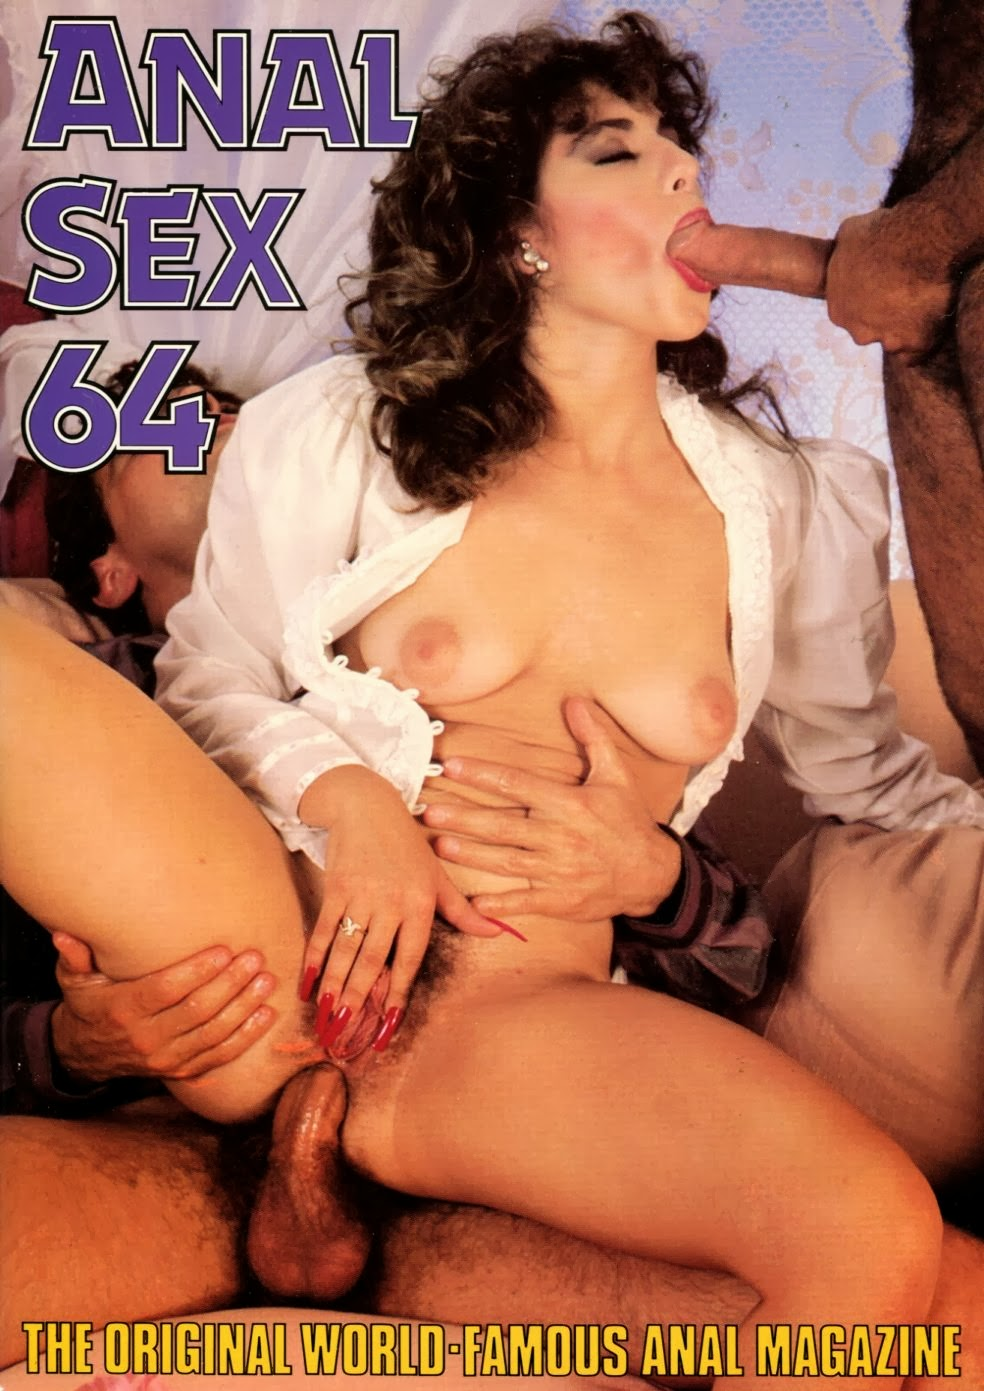 film sex anni 70 chat per single senza abbonamento